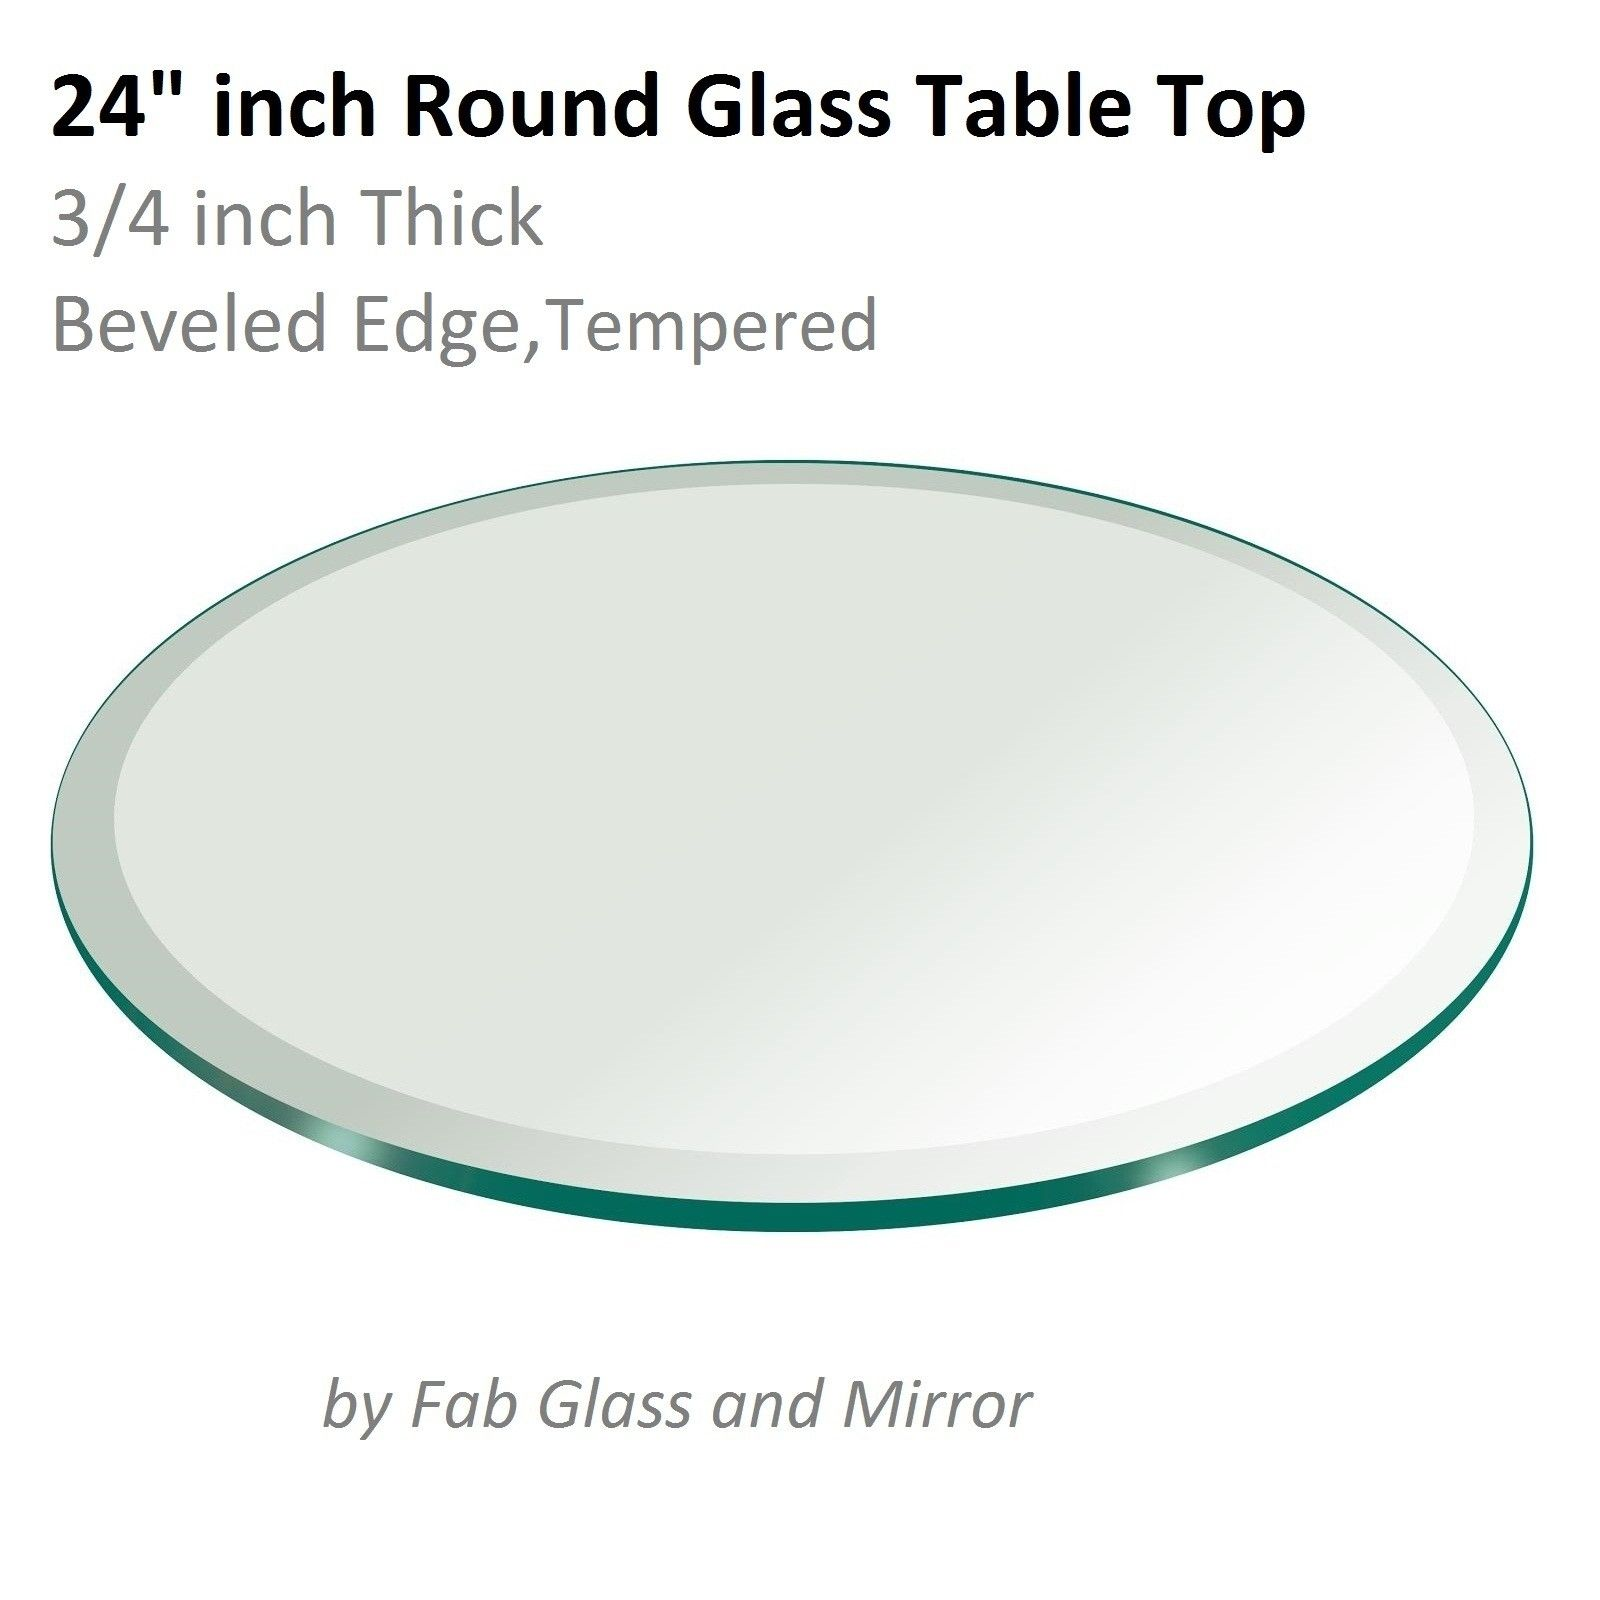 Round Glass Table Top 24